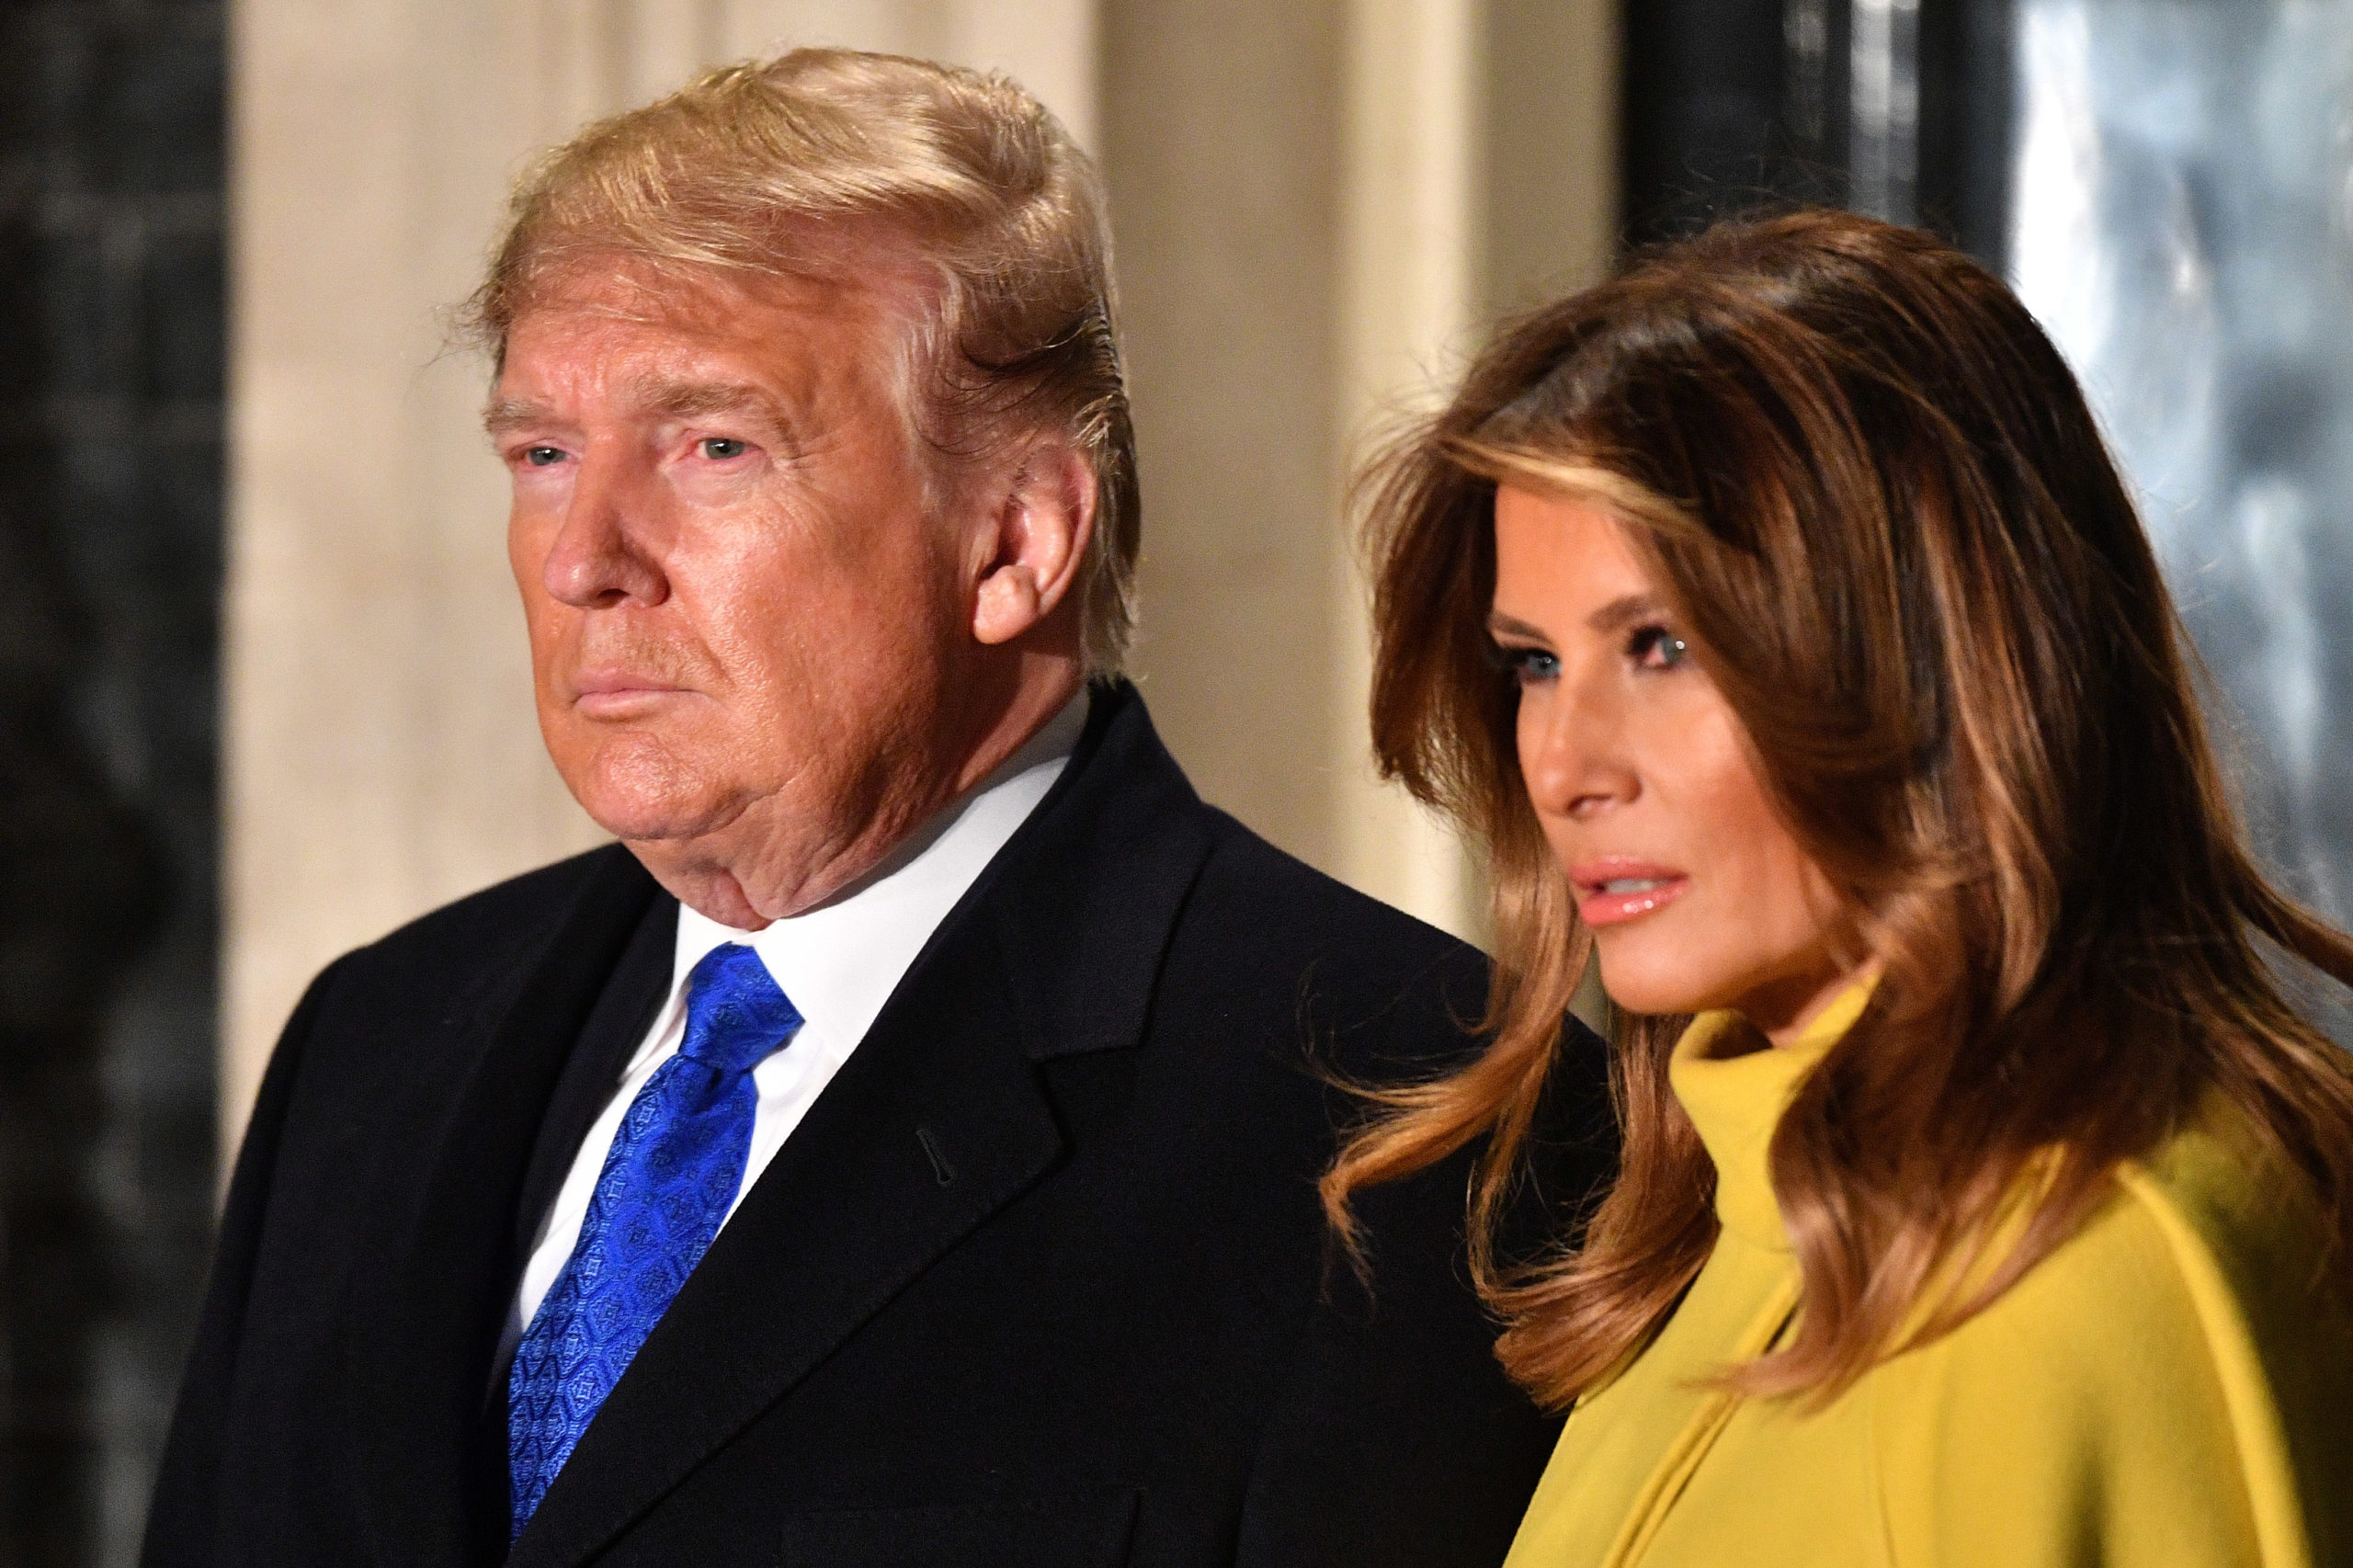 Donald and Melania Trump look very serious.